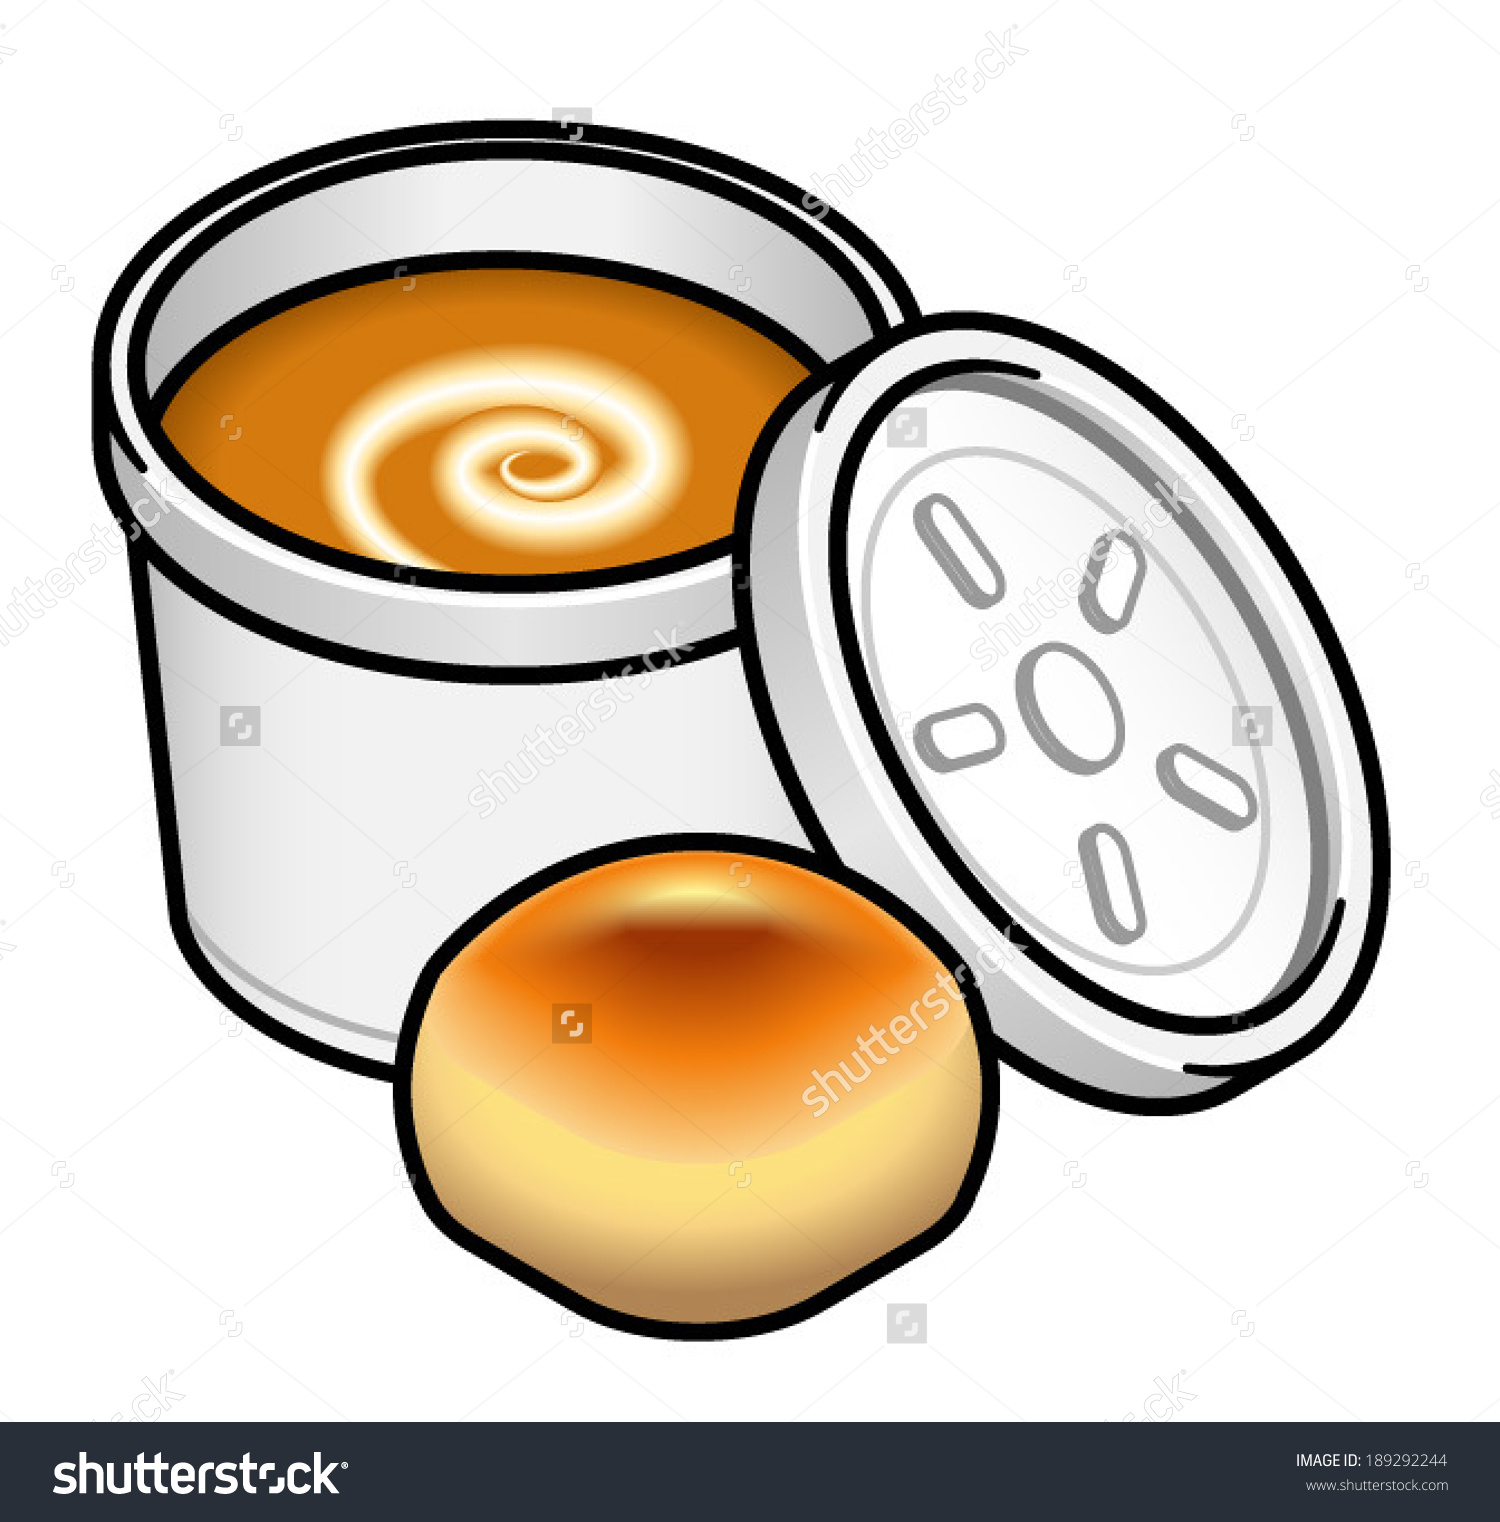 Soup And Roll Clipart.